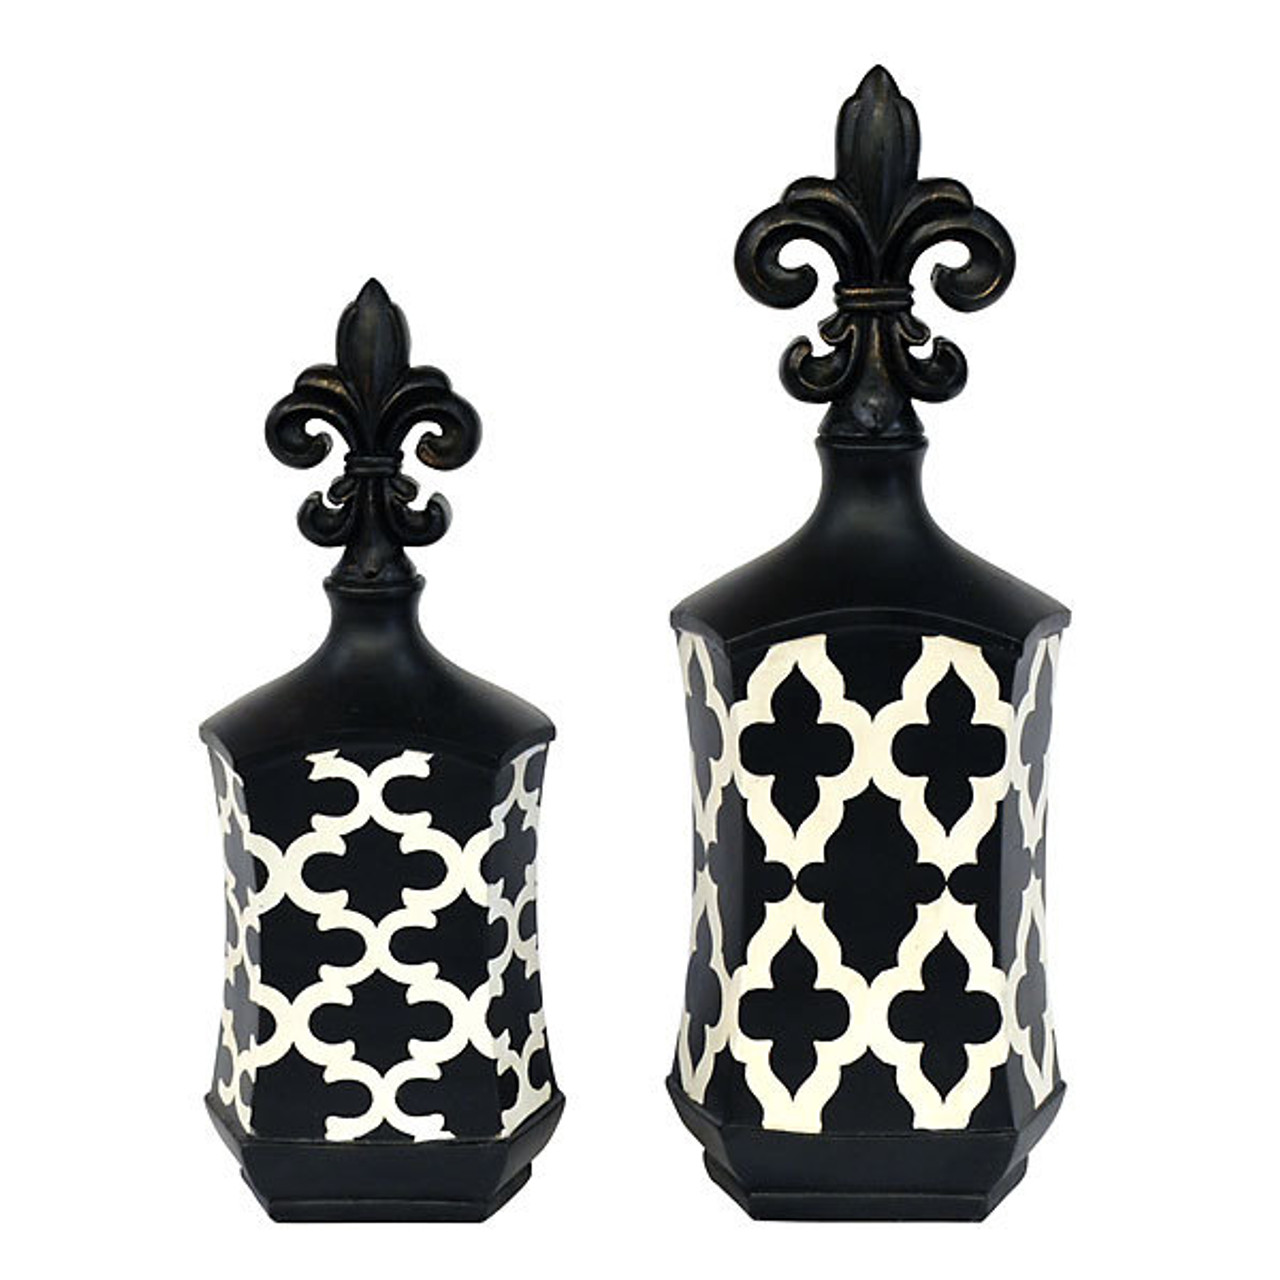 Set Of 2 Fleur De Lis Decor Accents Figurines Black White Annie Rooster S Sally Ann S Antiques Collectibles And More